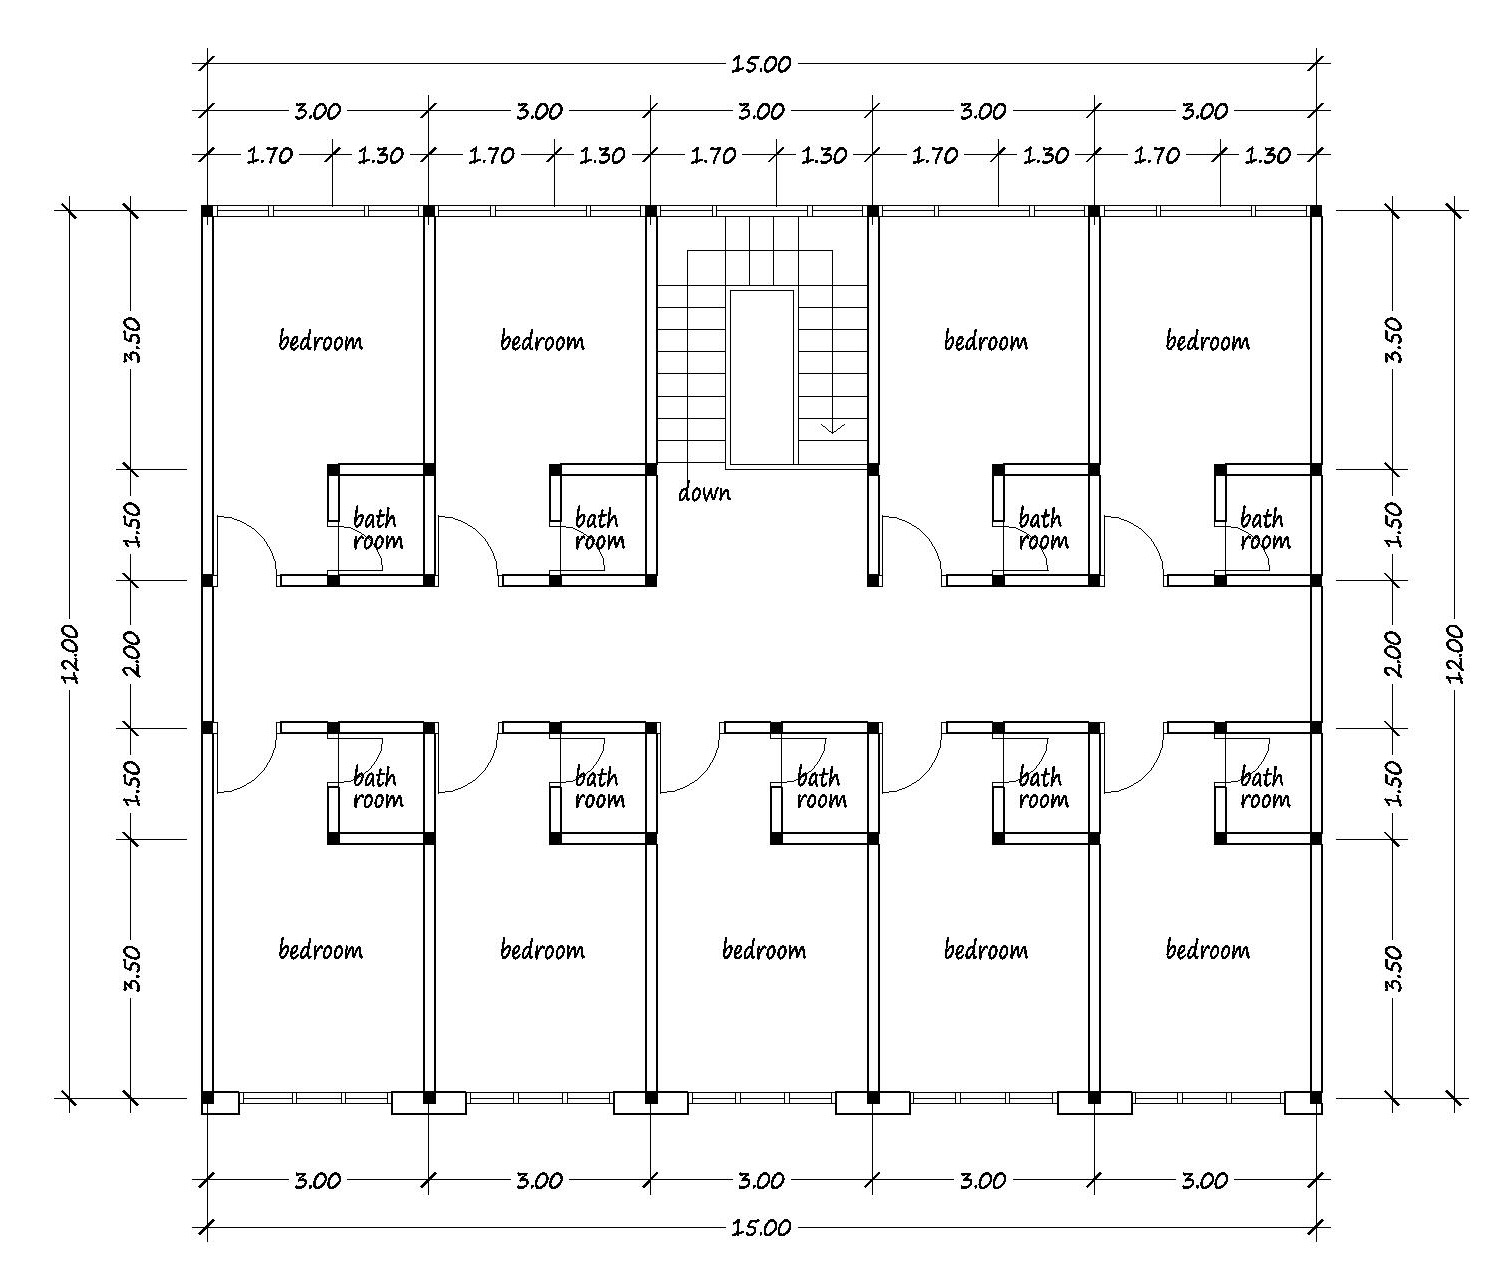 House plans for you plans image design and about house for House designs plan